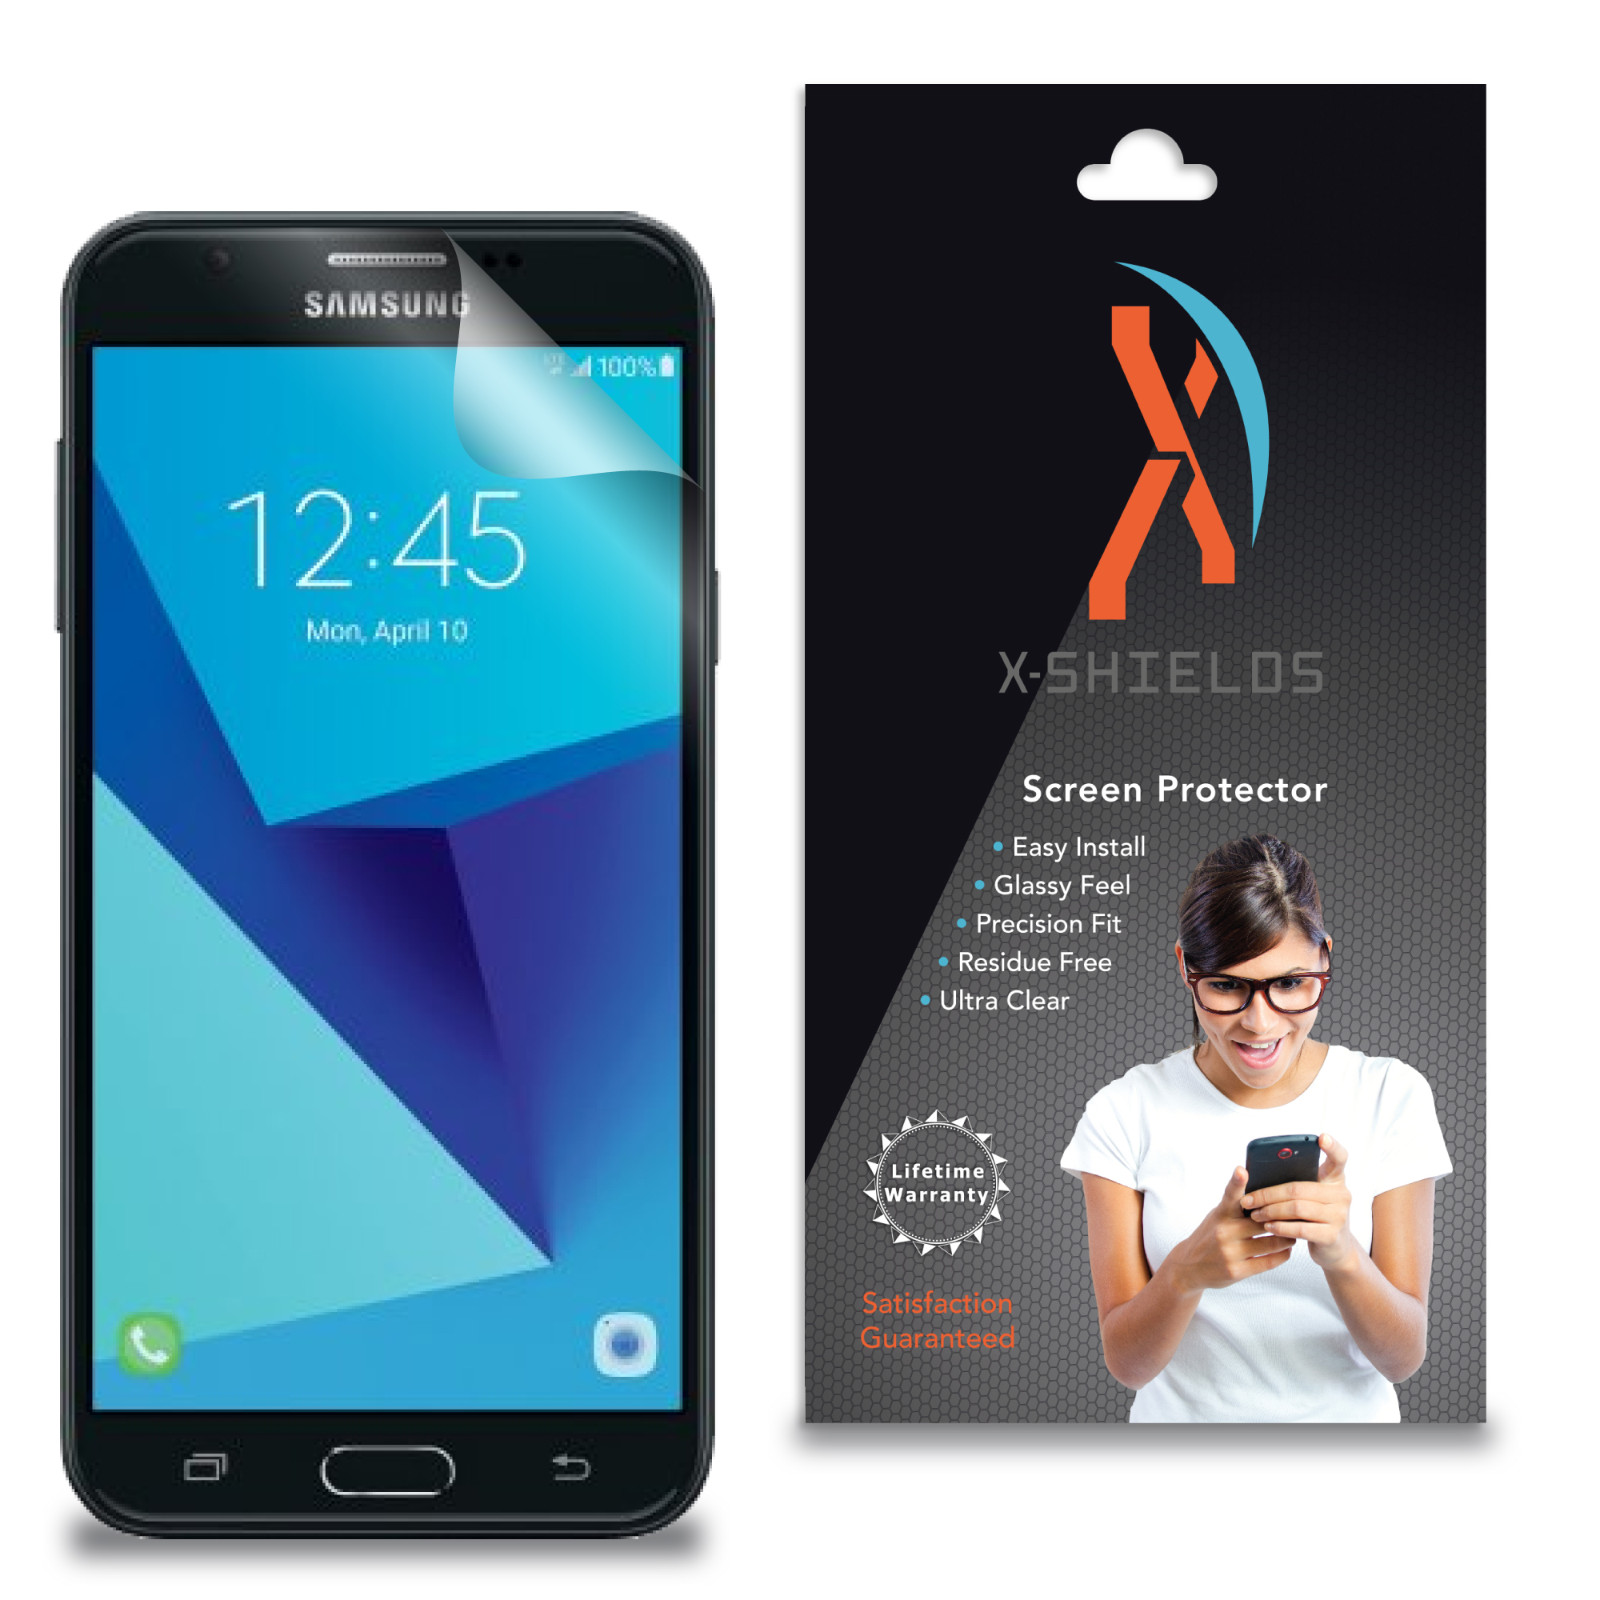 XShields© High Definition (HD+) Screen Protectors for Samsung Galaxy J7 Sky Pro (Maximum Clarity) Super Easy Installation [2-Pack] Lifetime Warranty, Advanced Touchscreen Accuracy